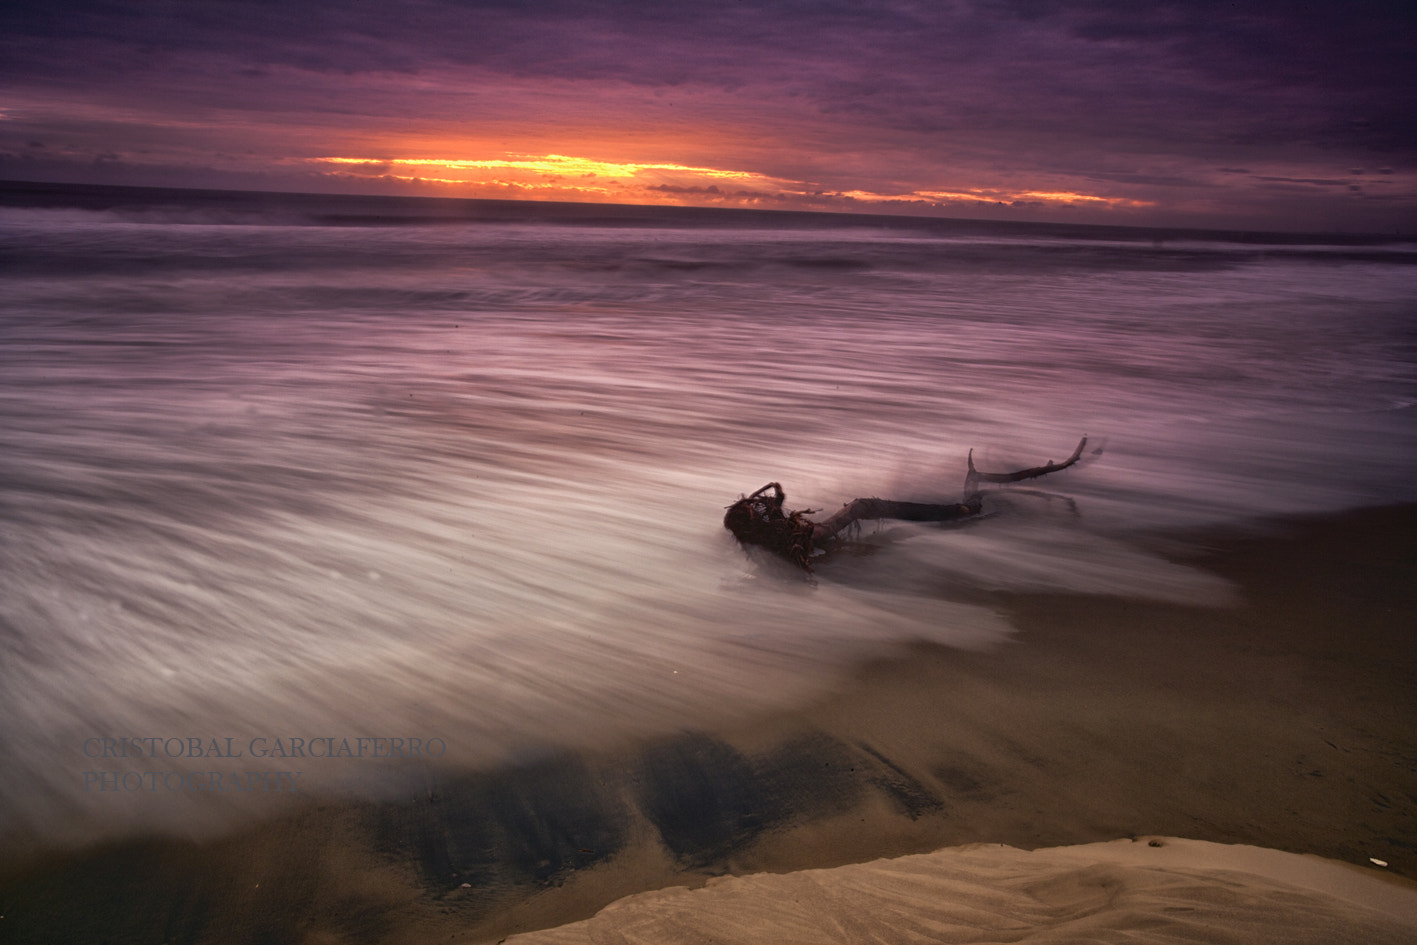 Photograph Sunrise at Dunes by Cristobal Garciaferro Rubio on 500px